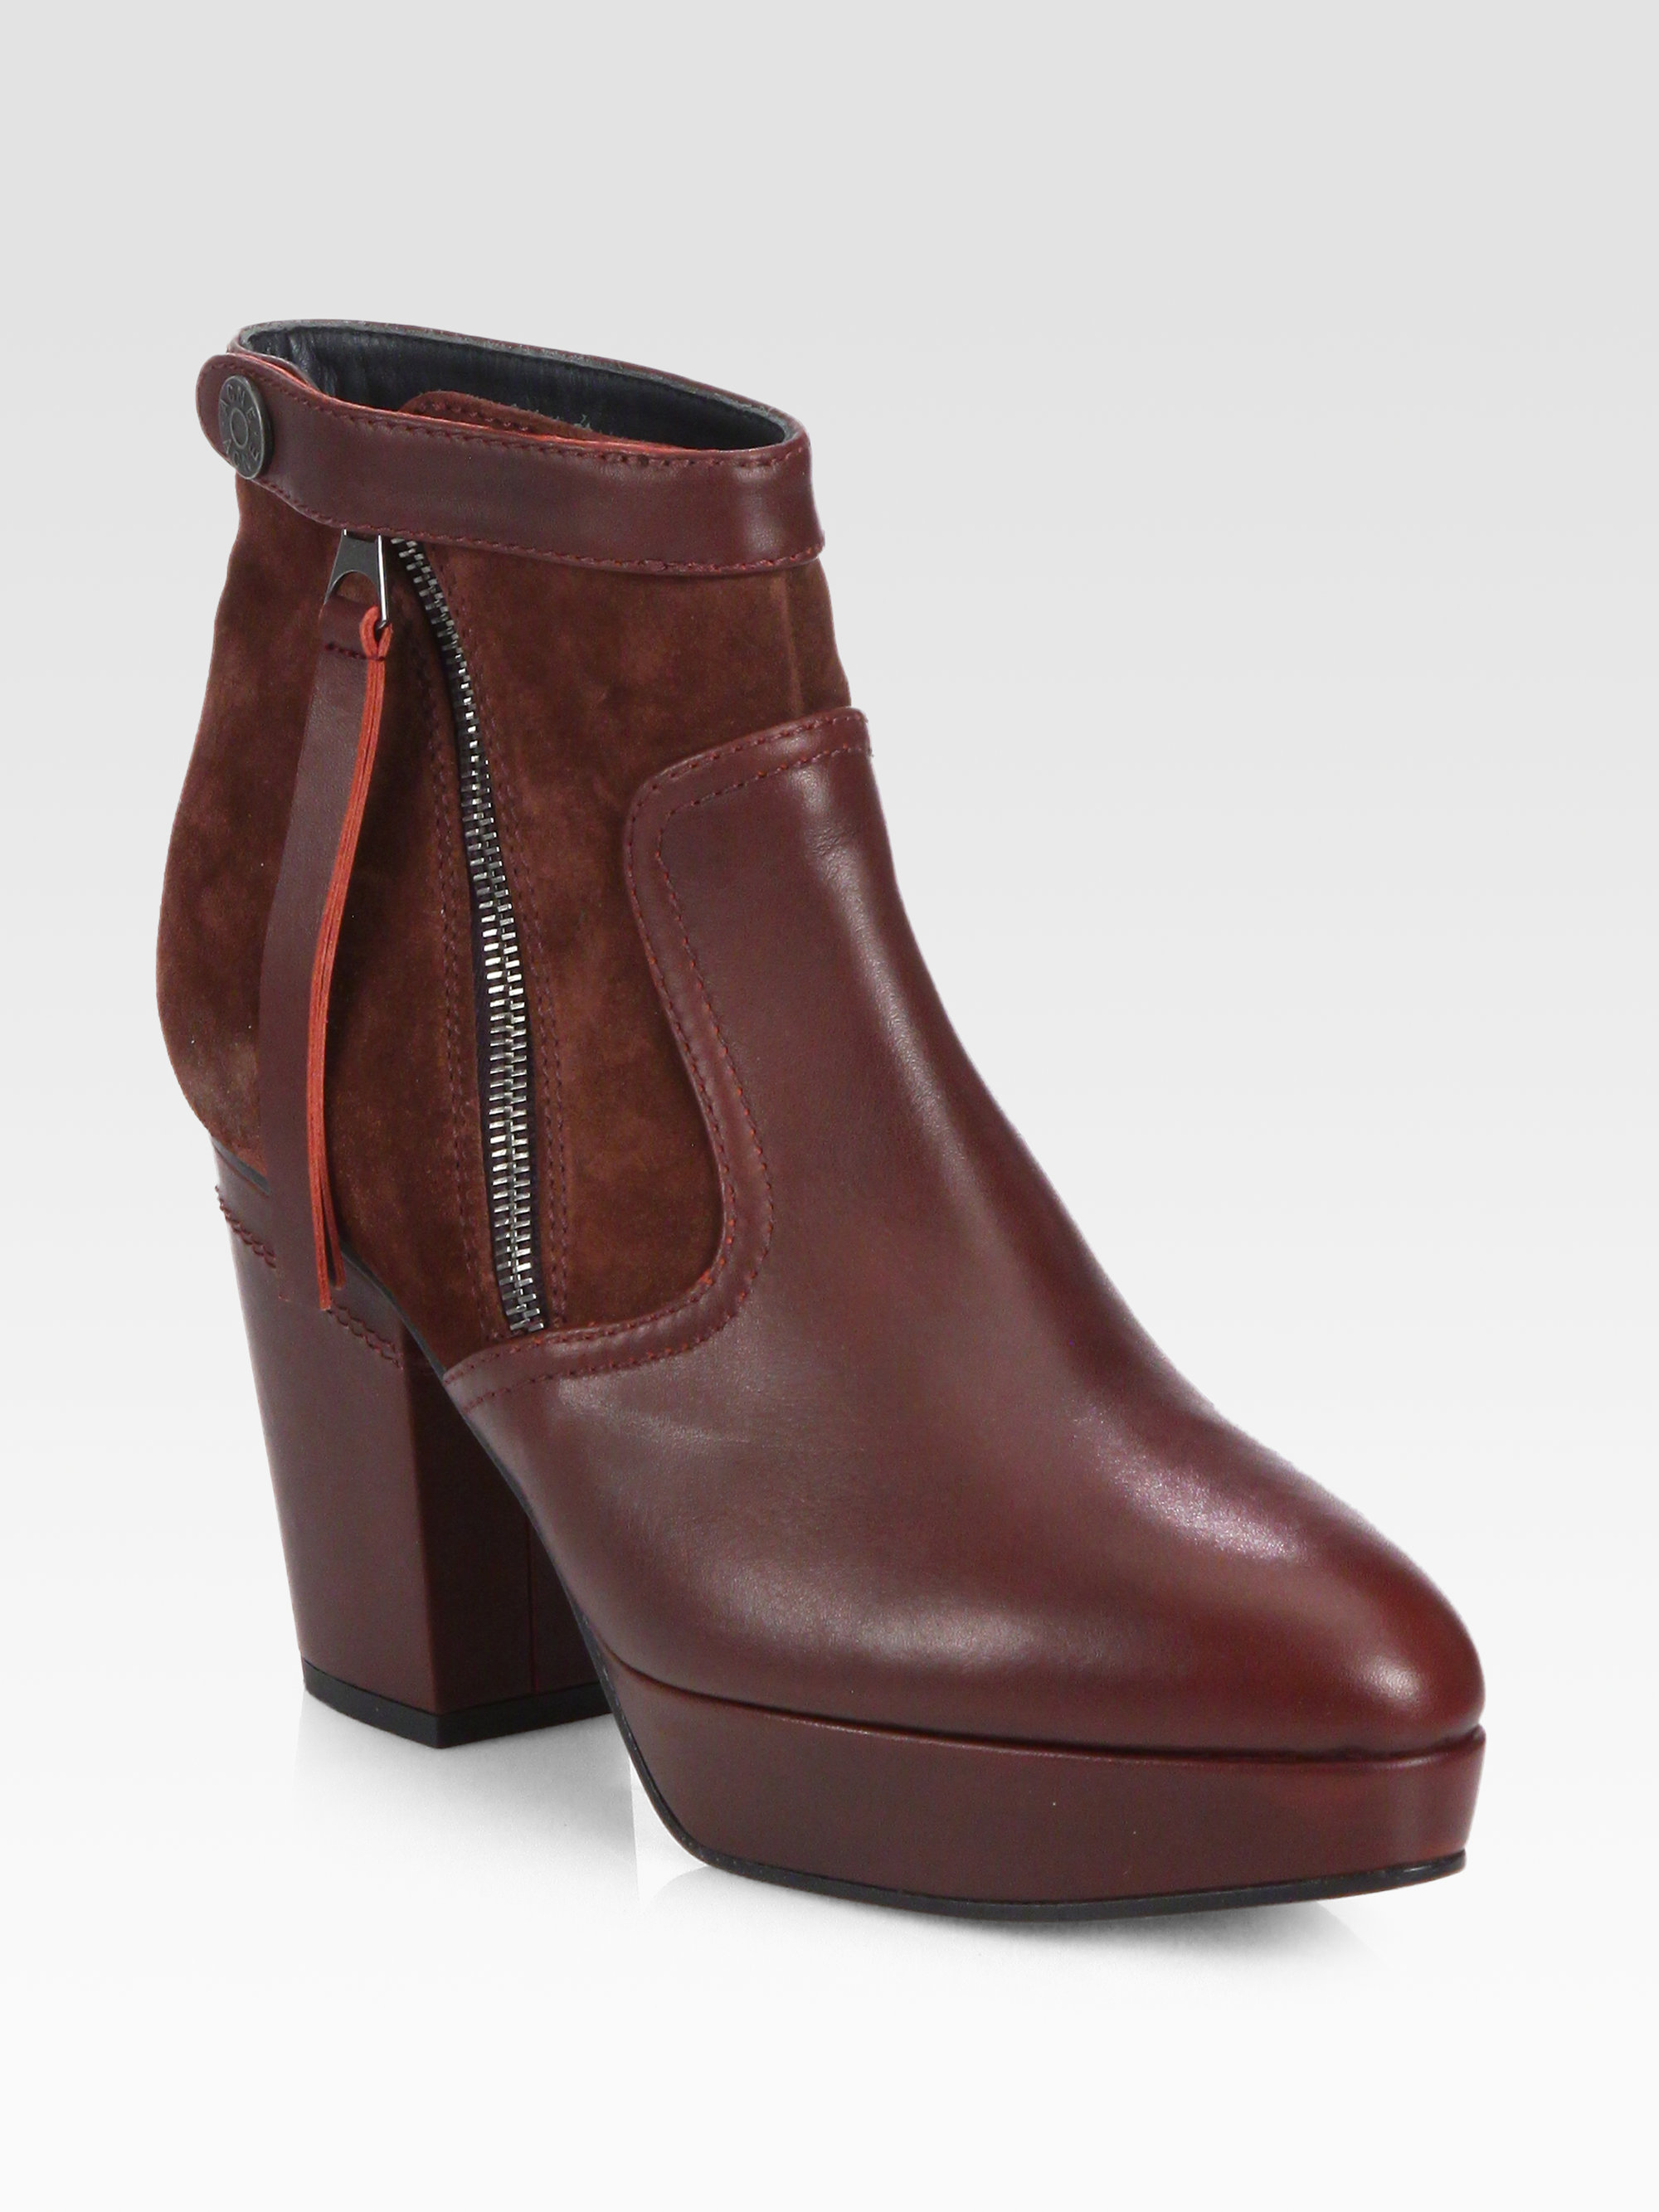 Acne Studios Suede Platform Ankle Boots In Red Wine Lyst